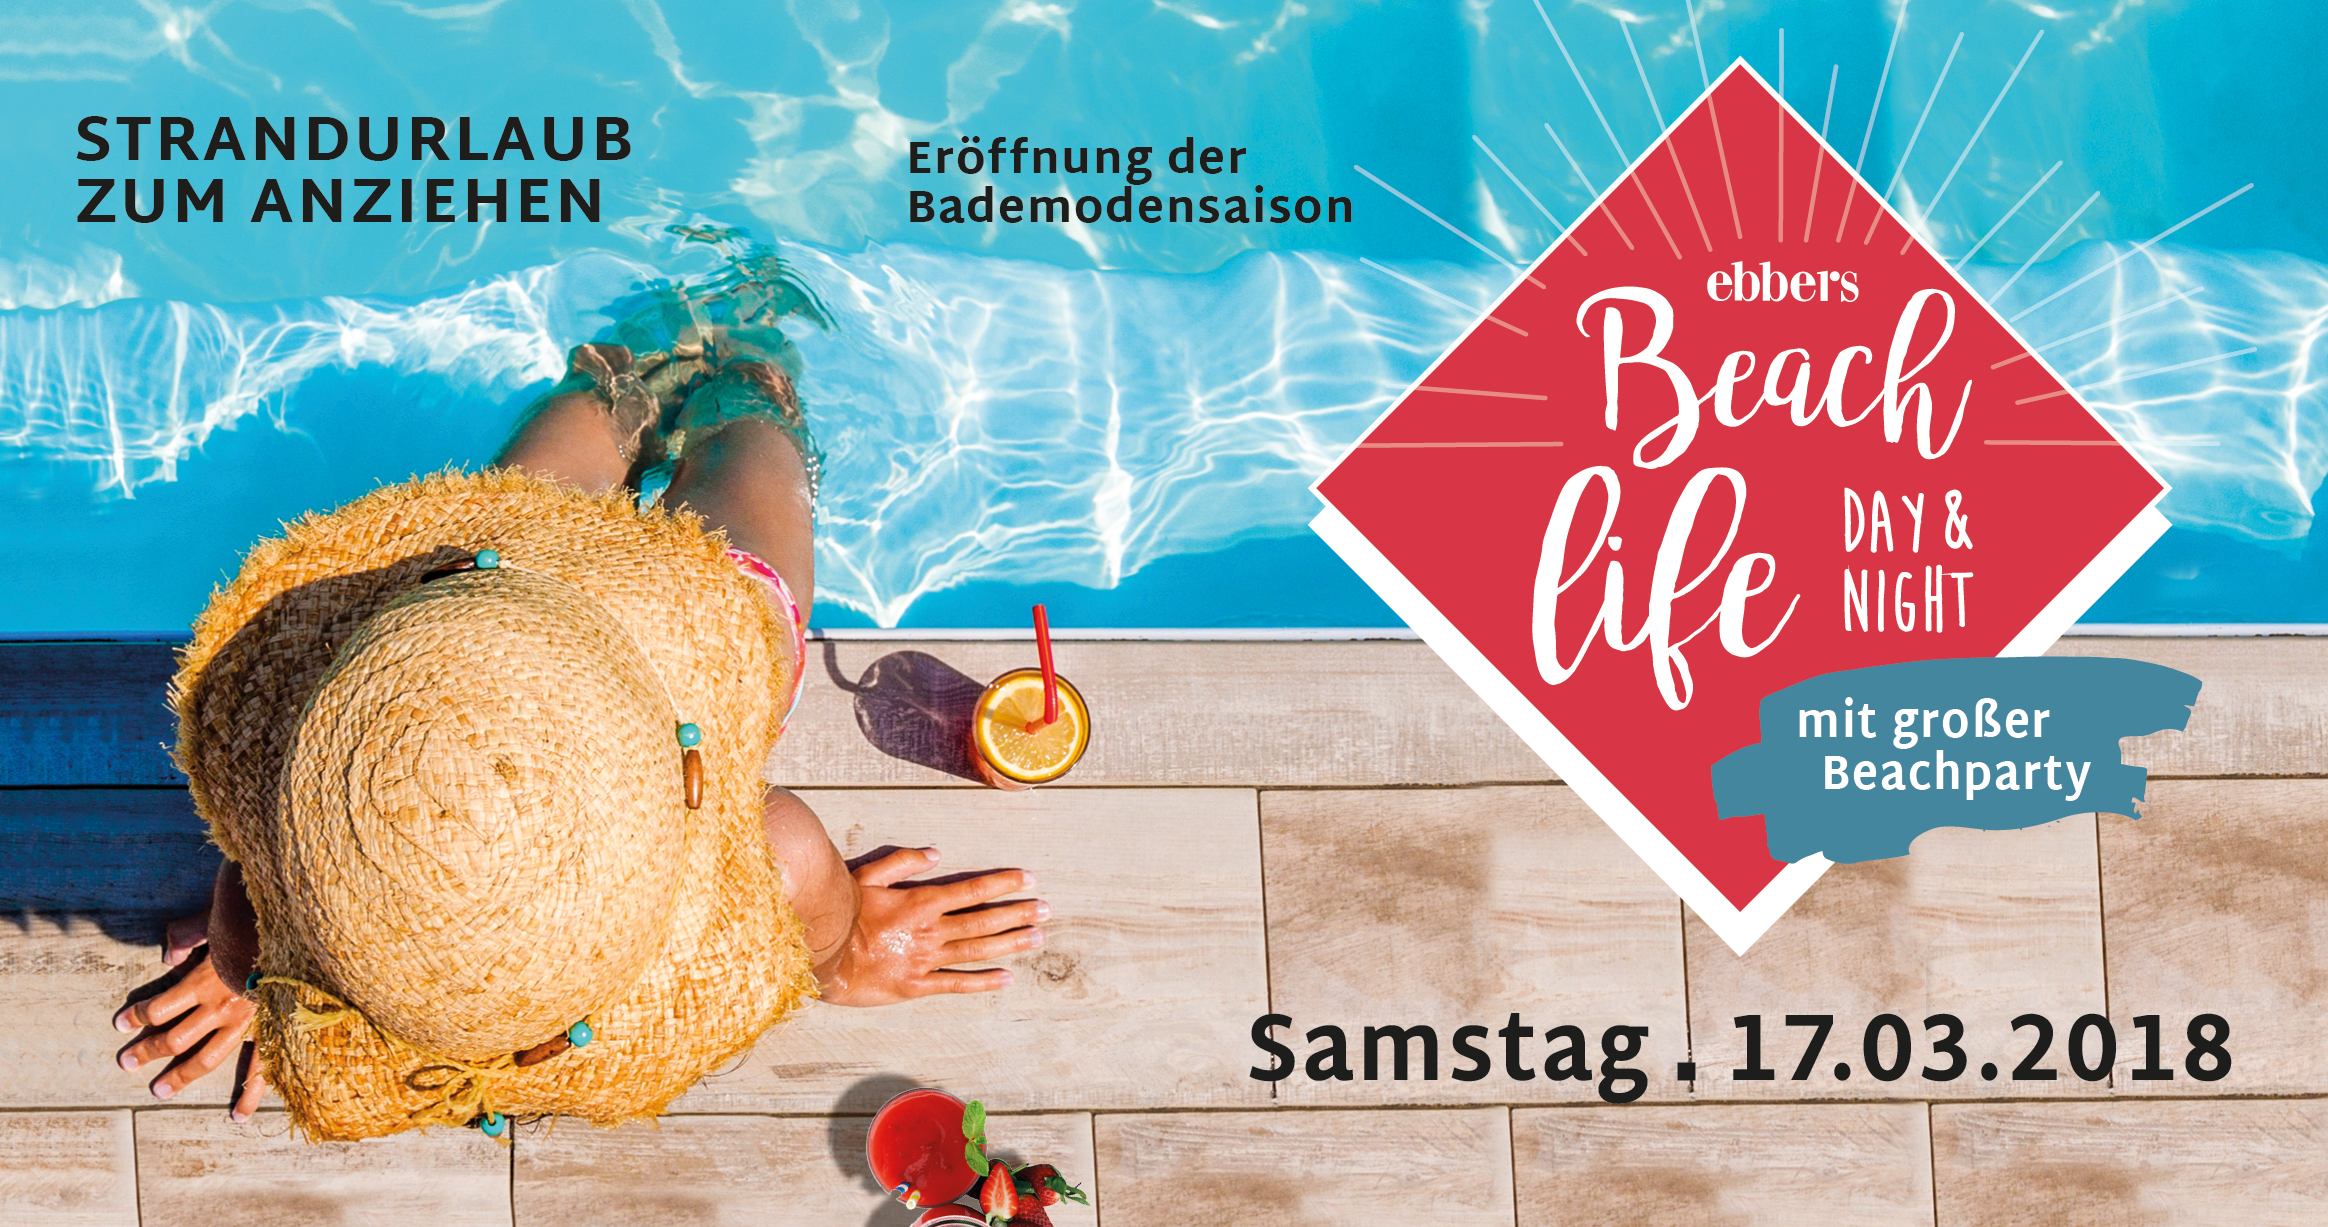 Beach life Day & Night bei ebbers, abends mit großer Beach Party